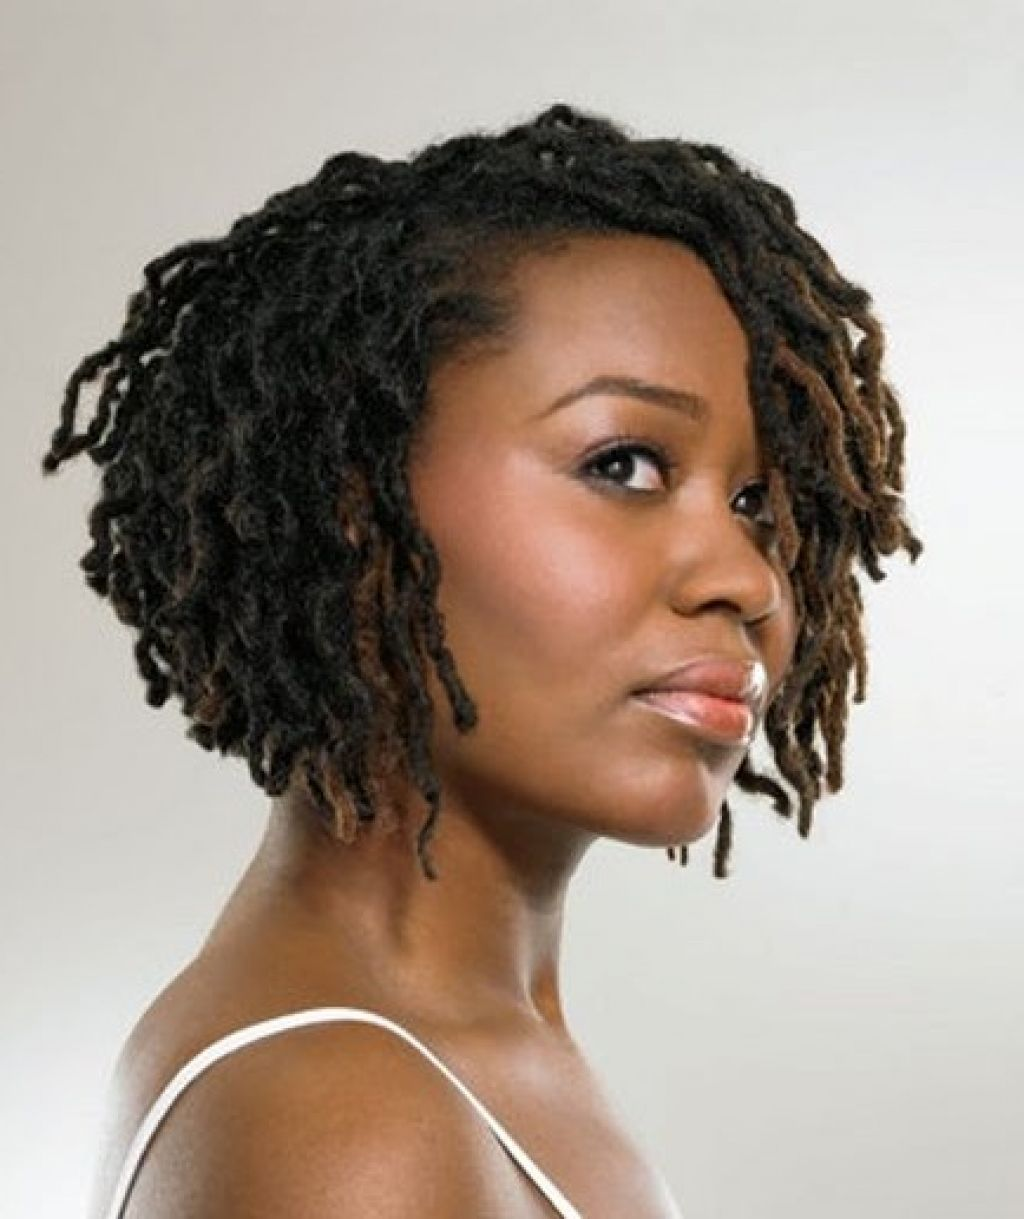 hairstyles for black women with thin hair - Google Search